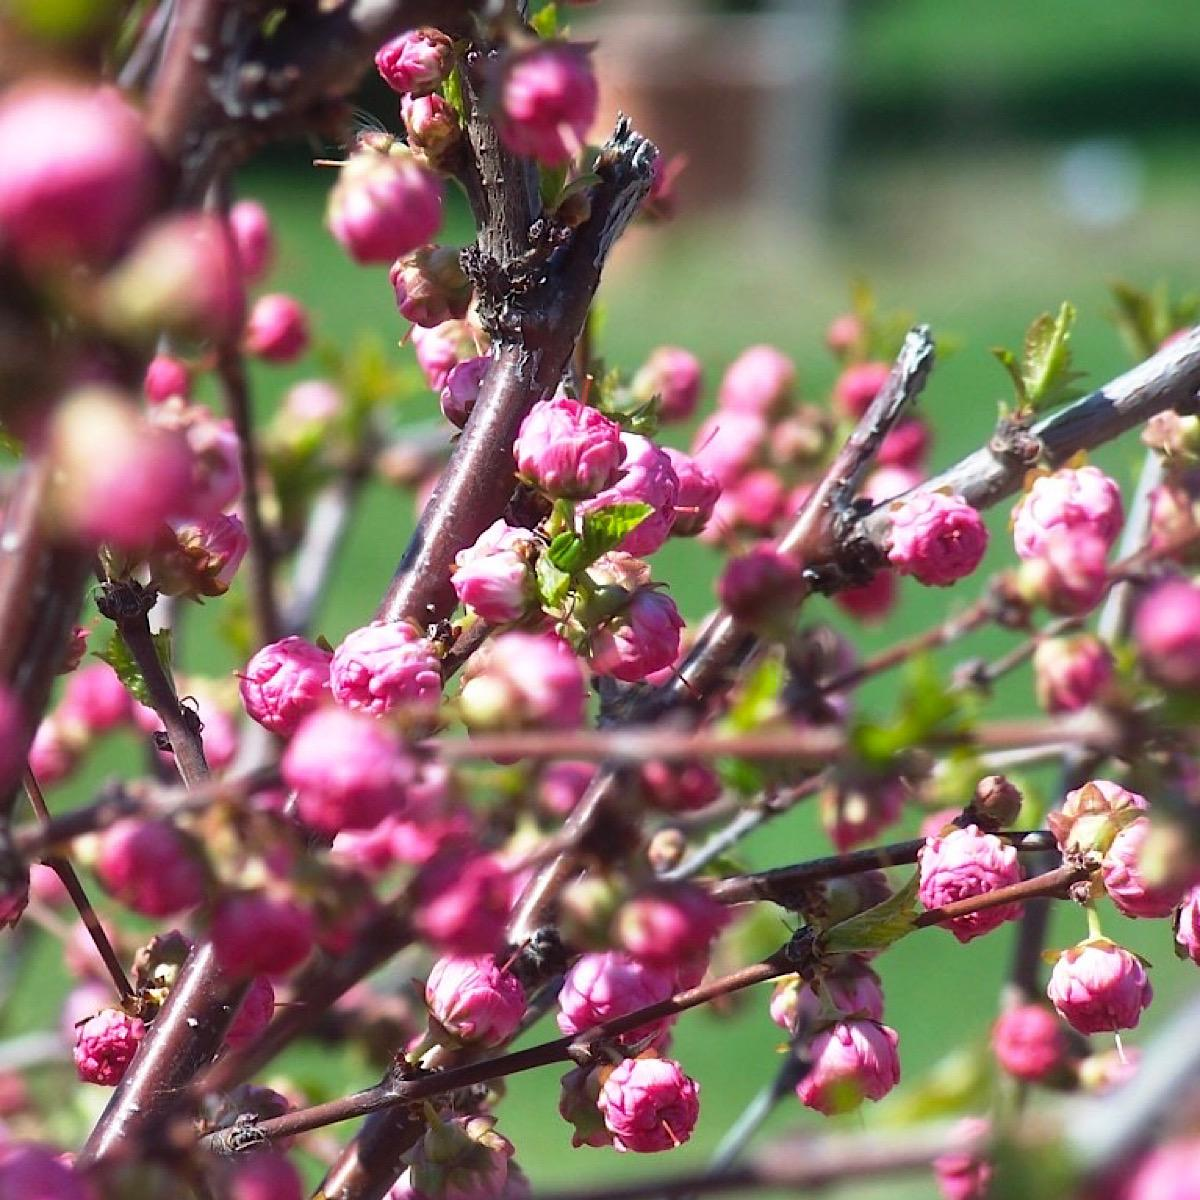 Cherry blossom tree signaling best time to plant vegetables in Zone 4